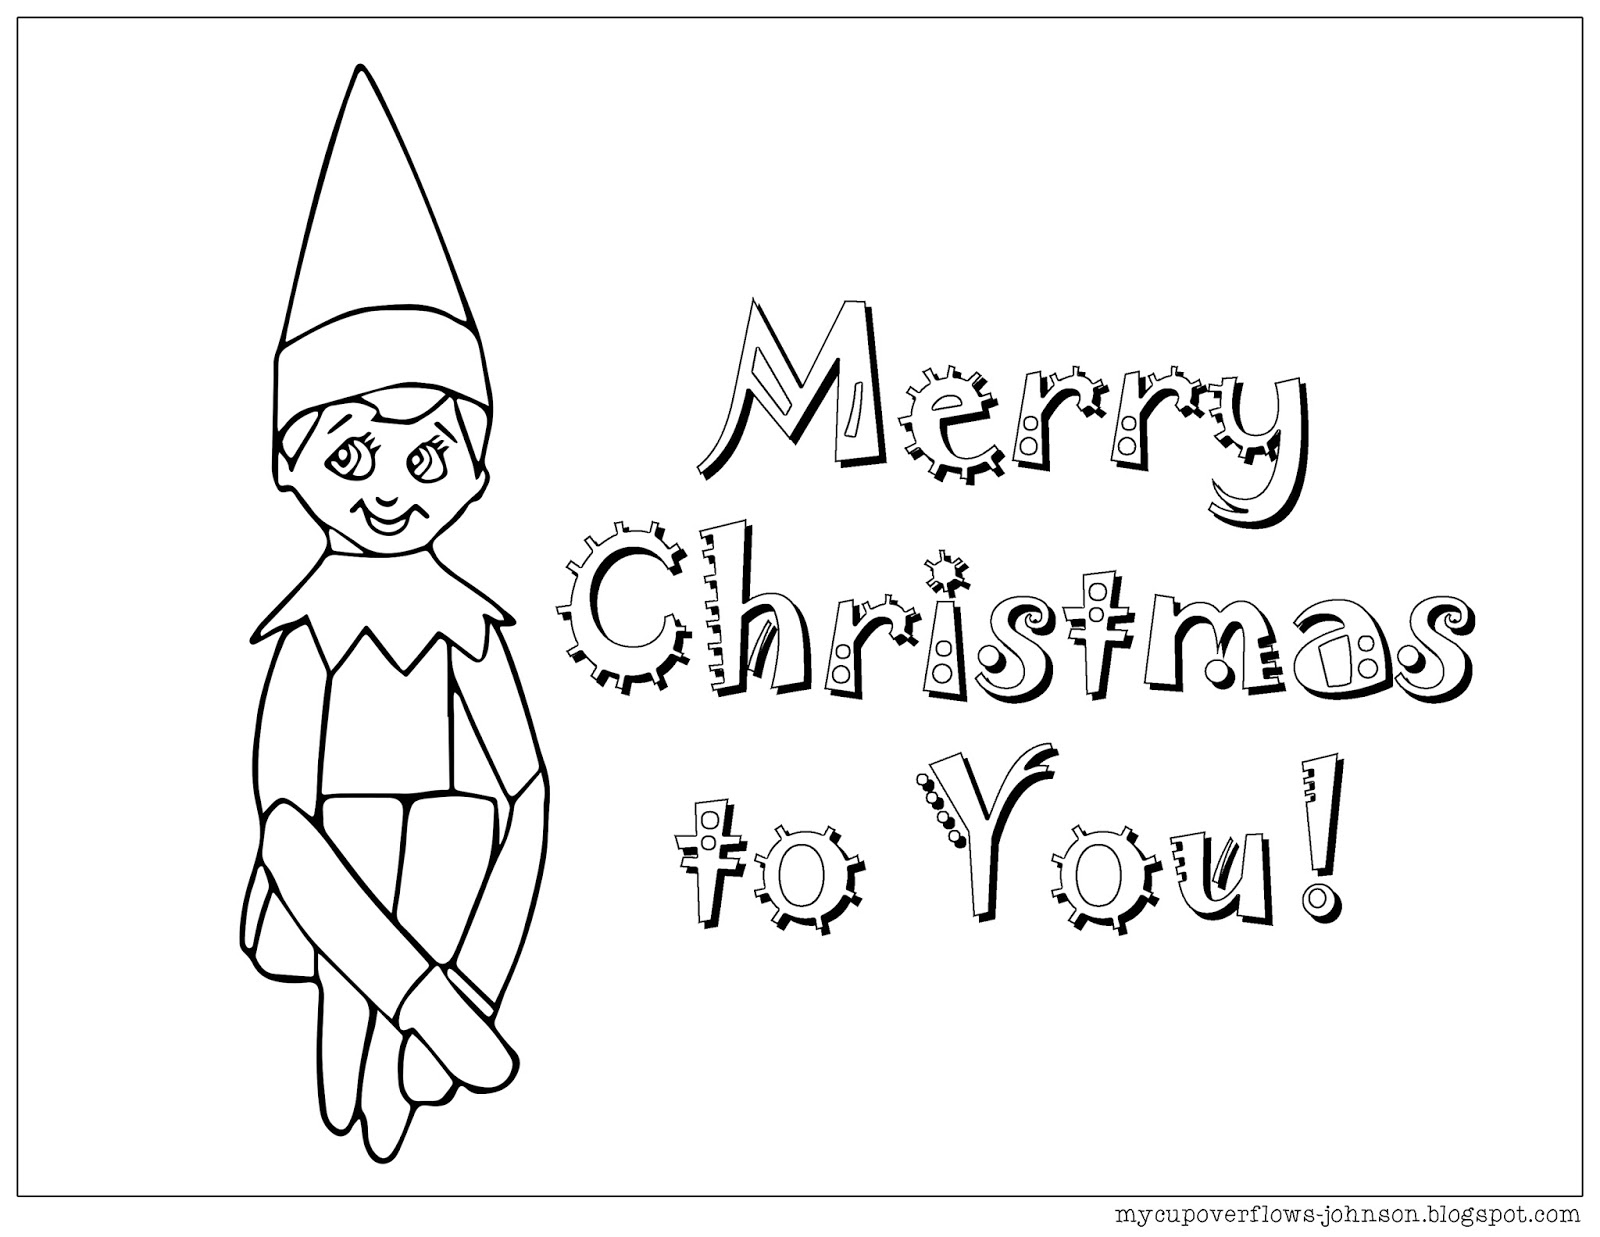 elf on the shelf coloring book elf on the shelf printable coloring pages coloring home on coloring elf book the shelf